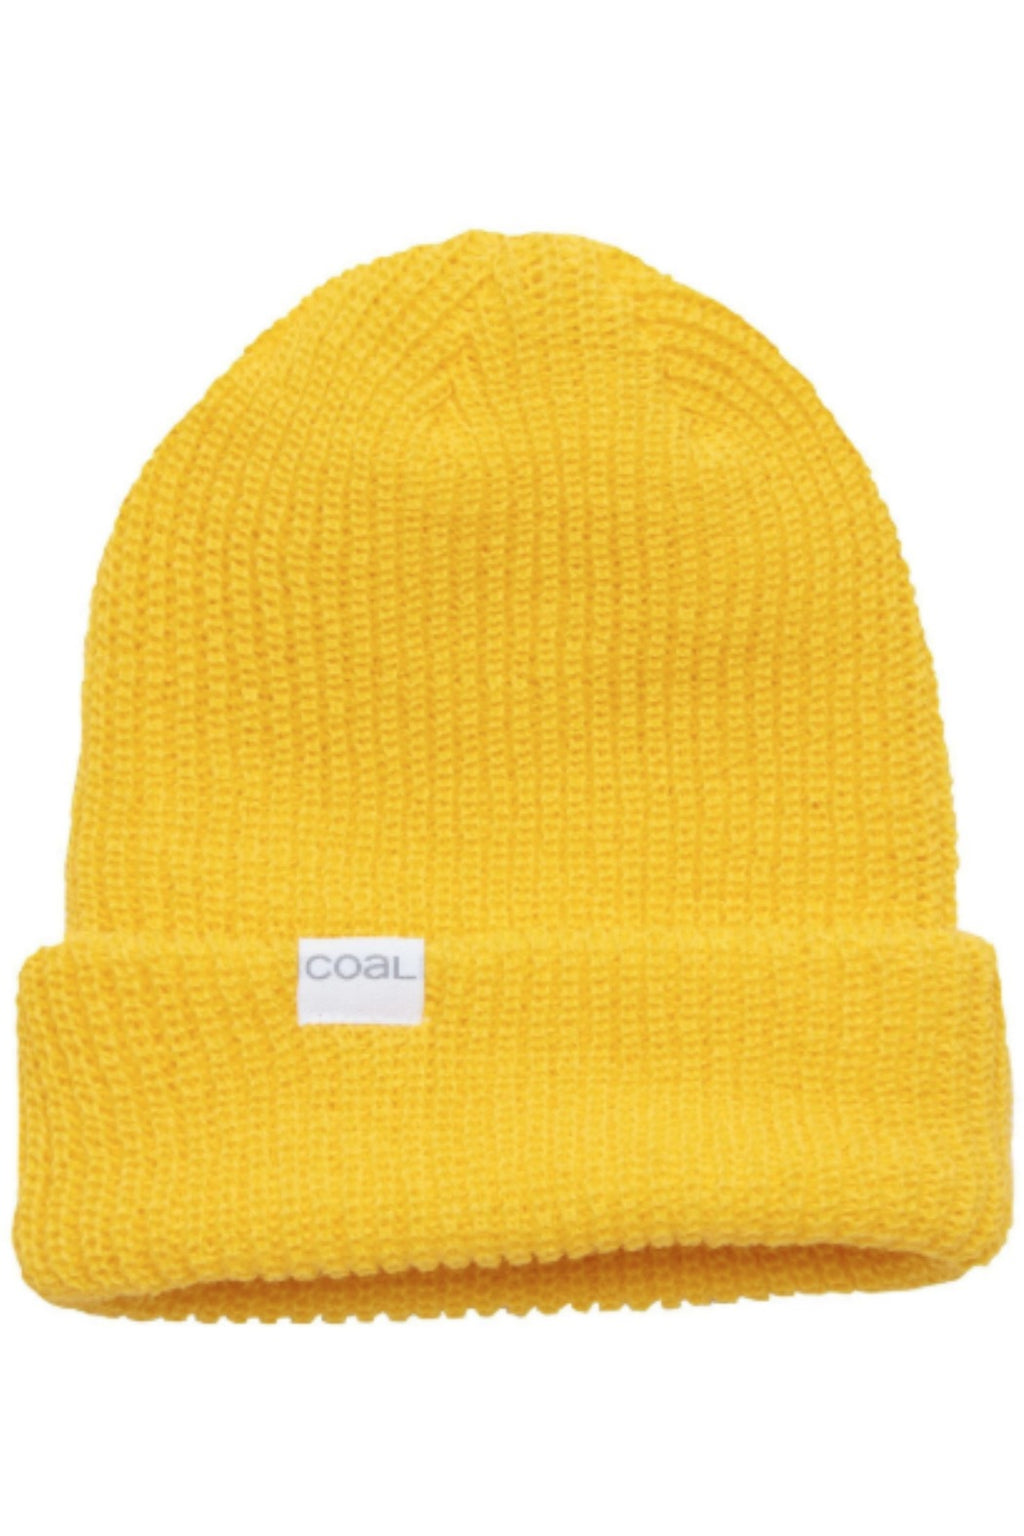 Coal Stanley Beanie - Yellow